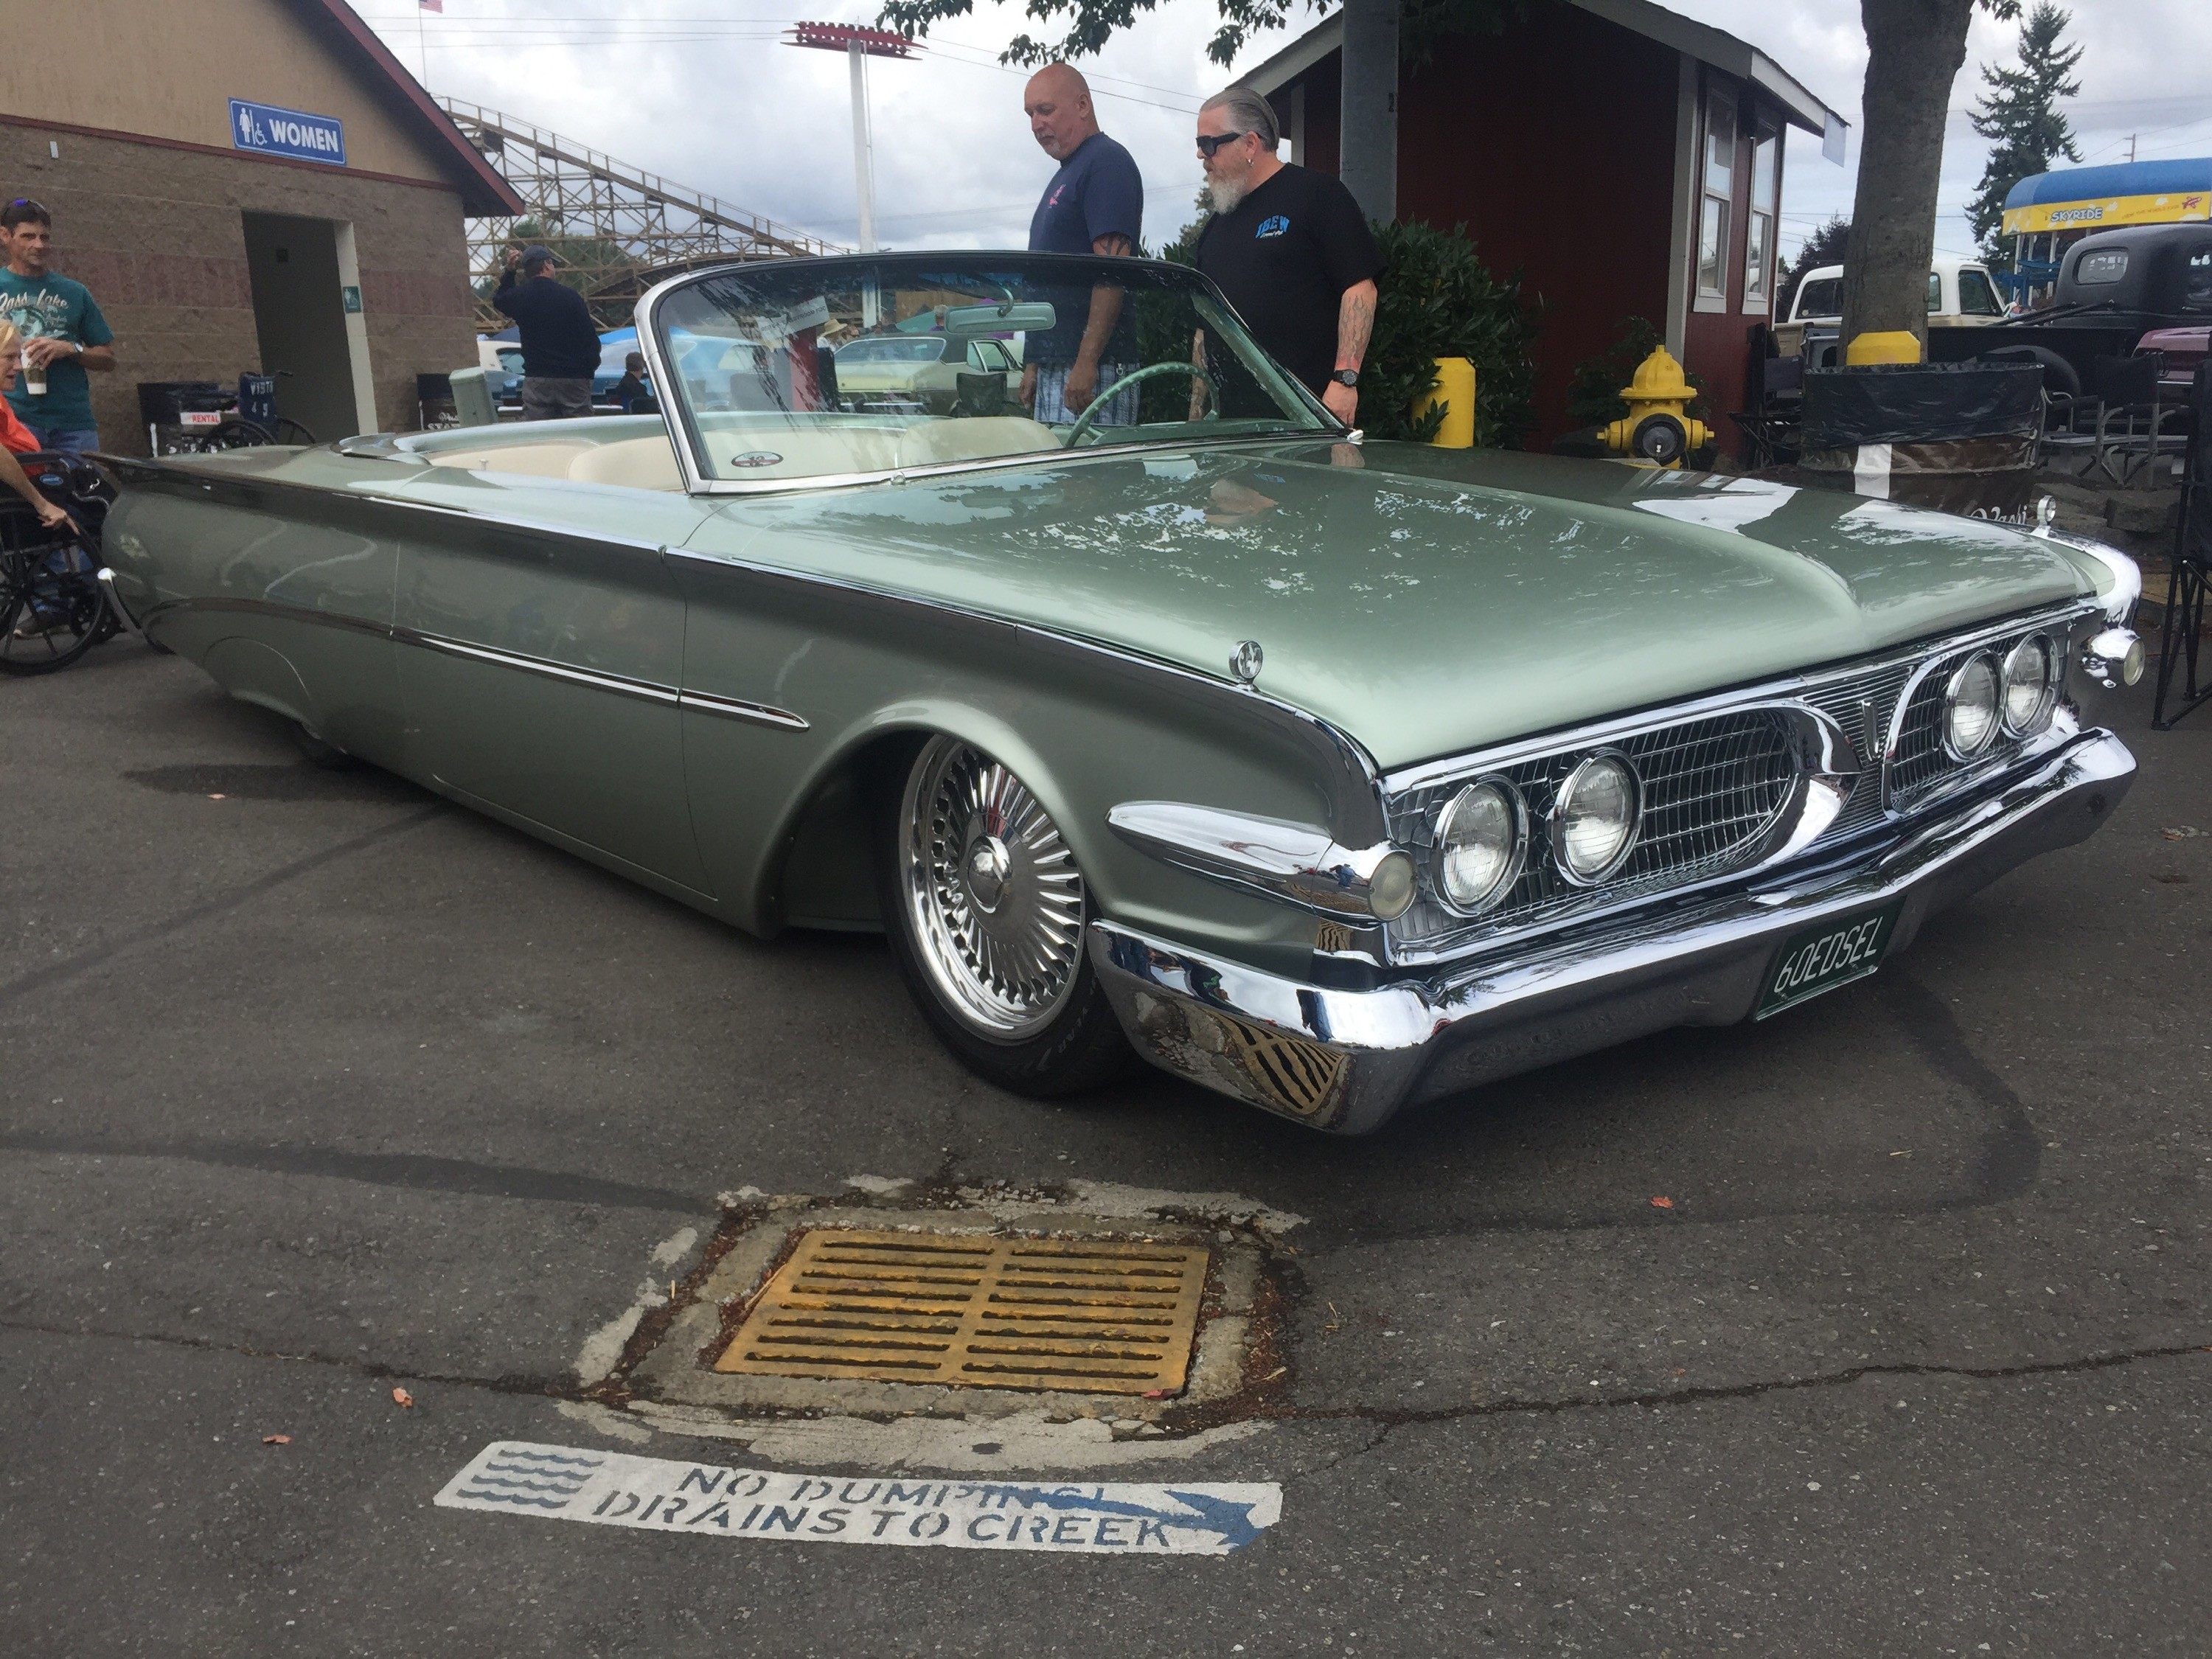 Custom Edsel Convertible spotted at the Goodguys Puyallup Show